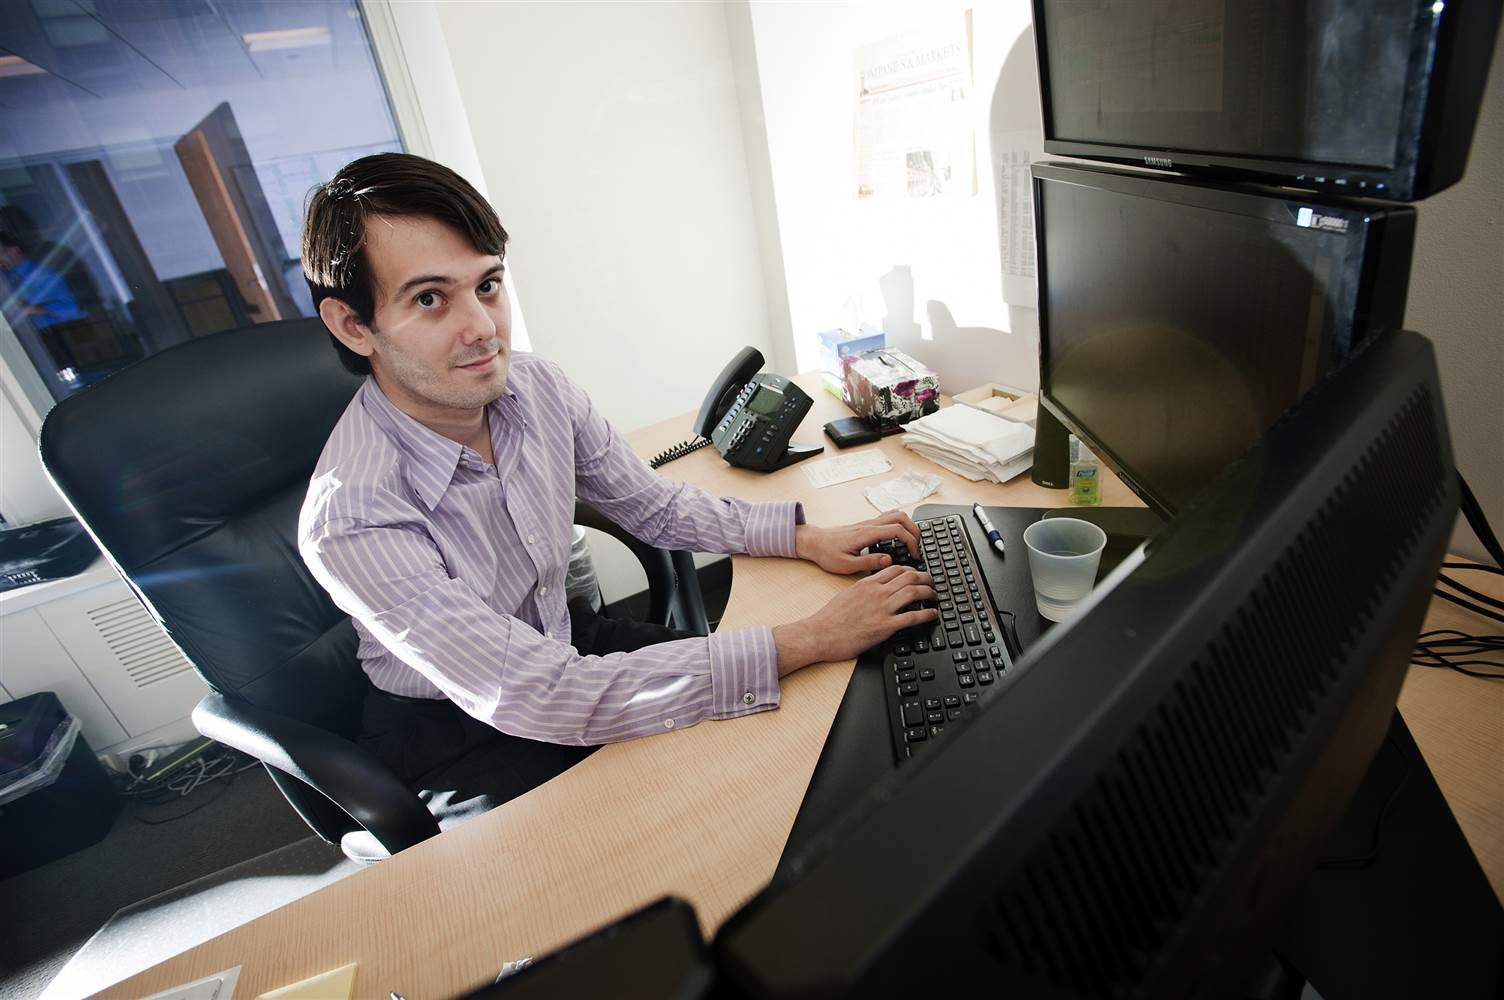 Martin Shkreli fired from Turing